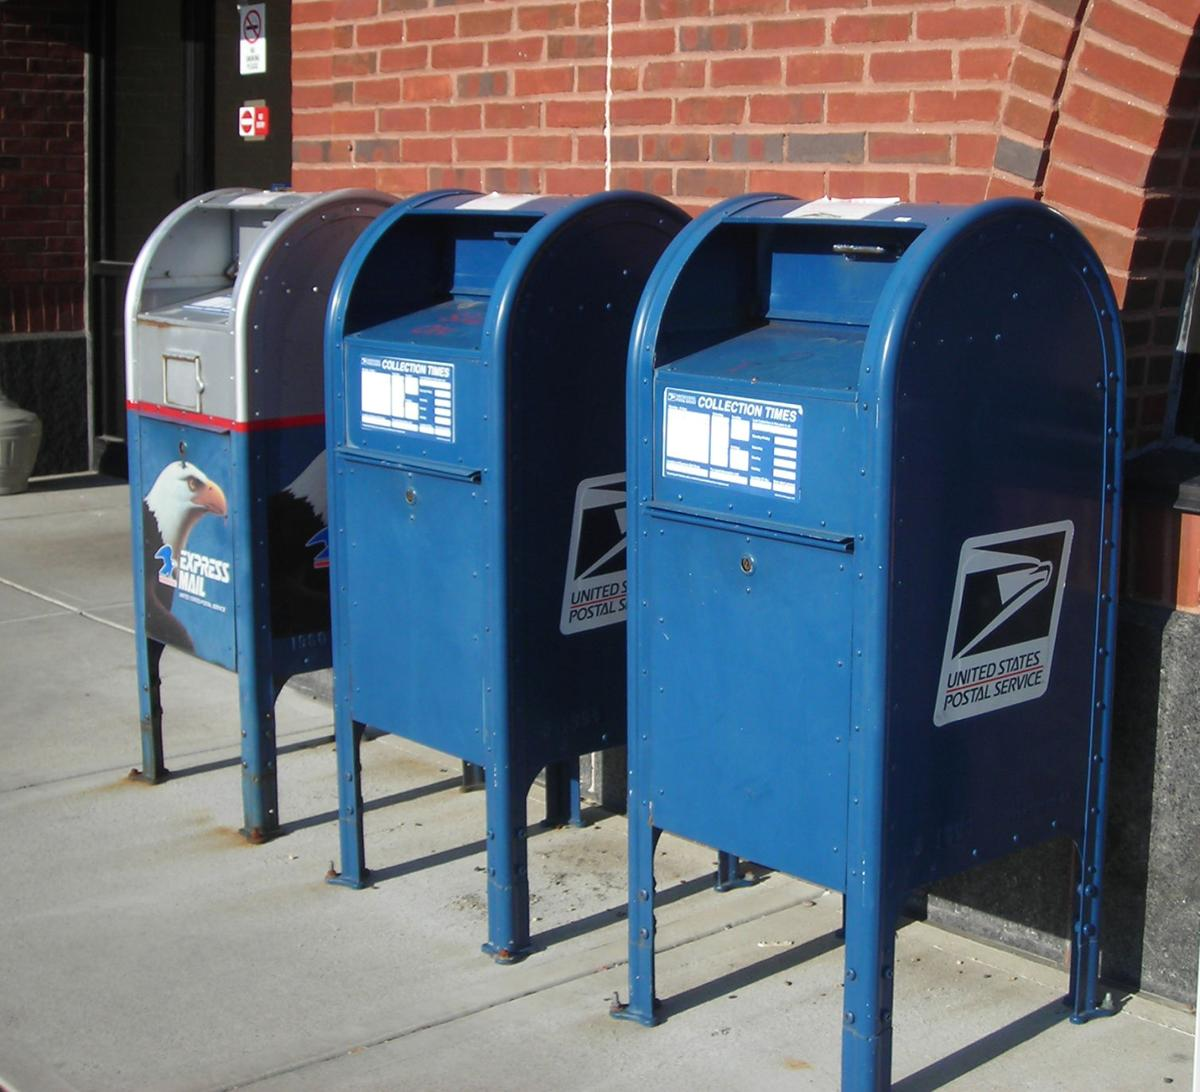 Beware of using postal blue boxes when mailing checks | Colorado